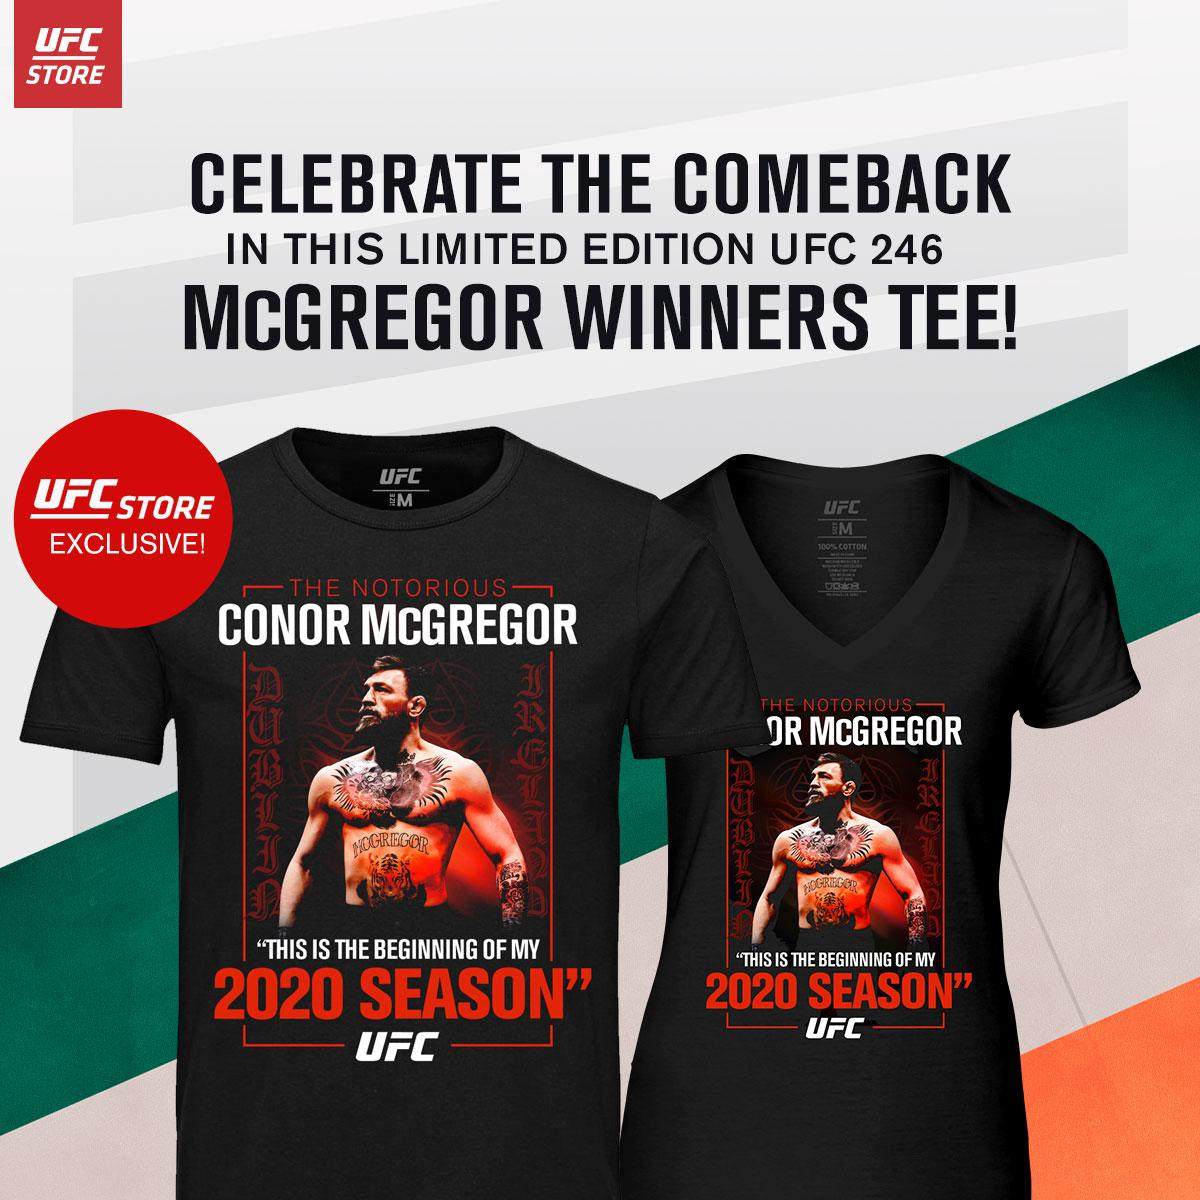 Congrats to @TheNotoriousMMA  for the epic win! Get this Limited Edition McGregor Winner's Tee today: http://bit.ly/2R80Rkb  #ufc246 #conormcgregor